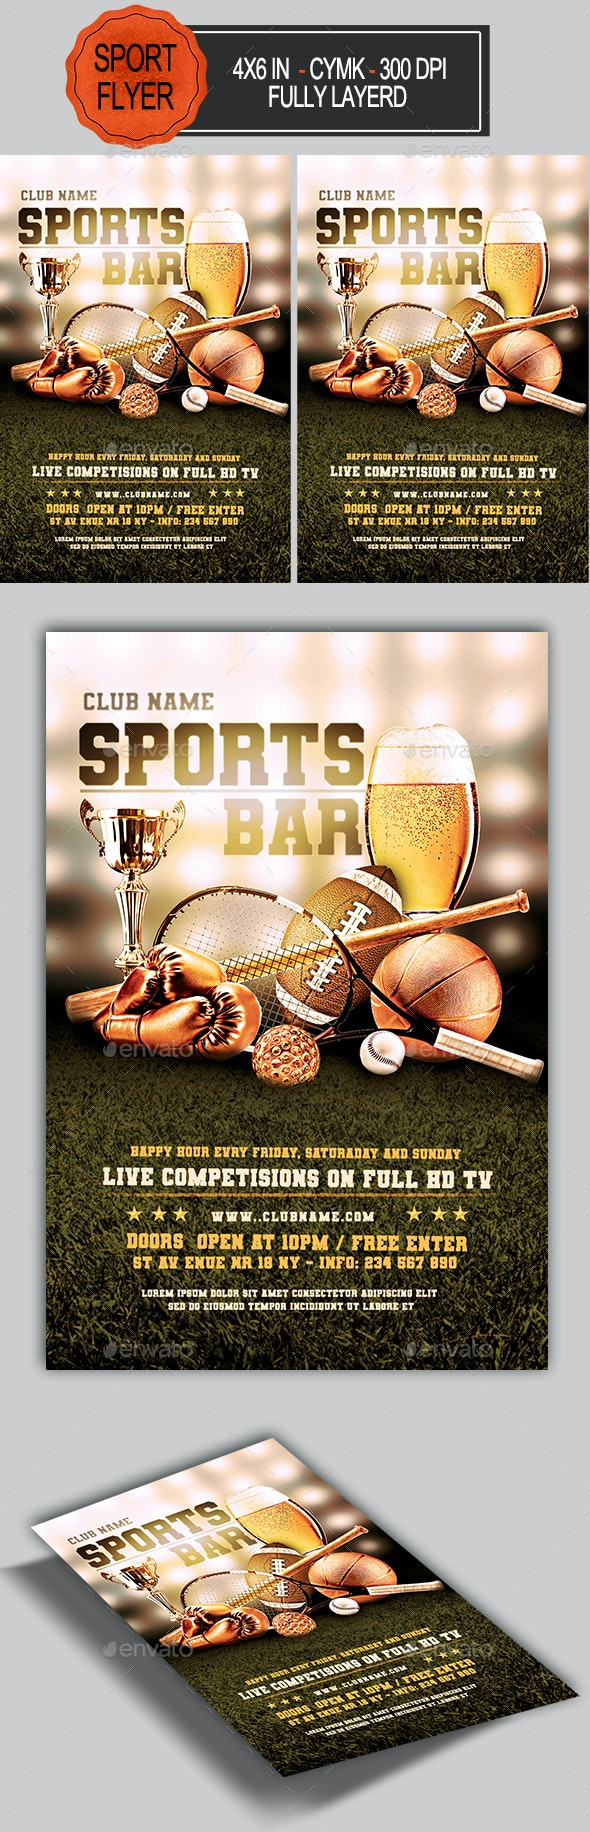 Sports Bar Flyer Template - Sports Events